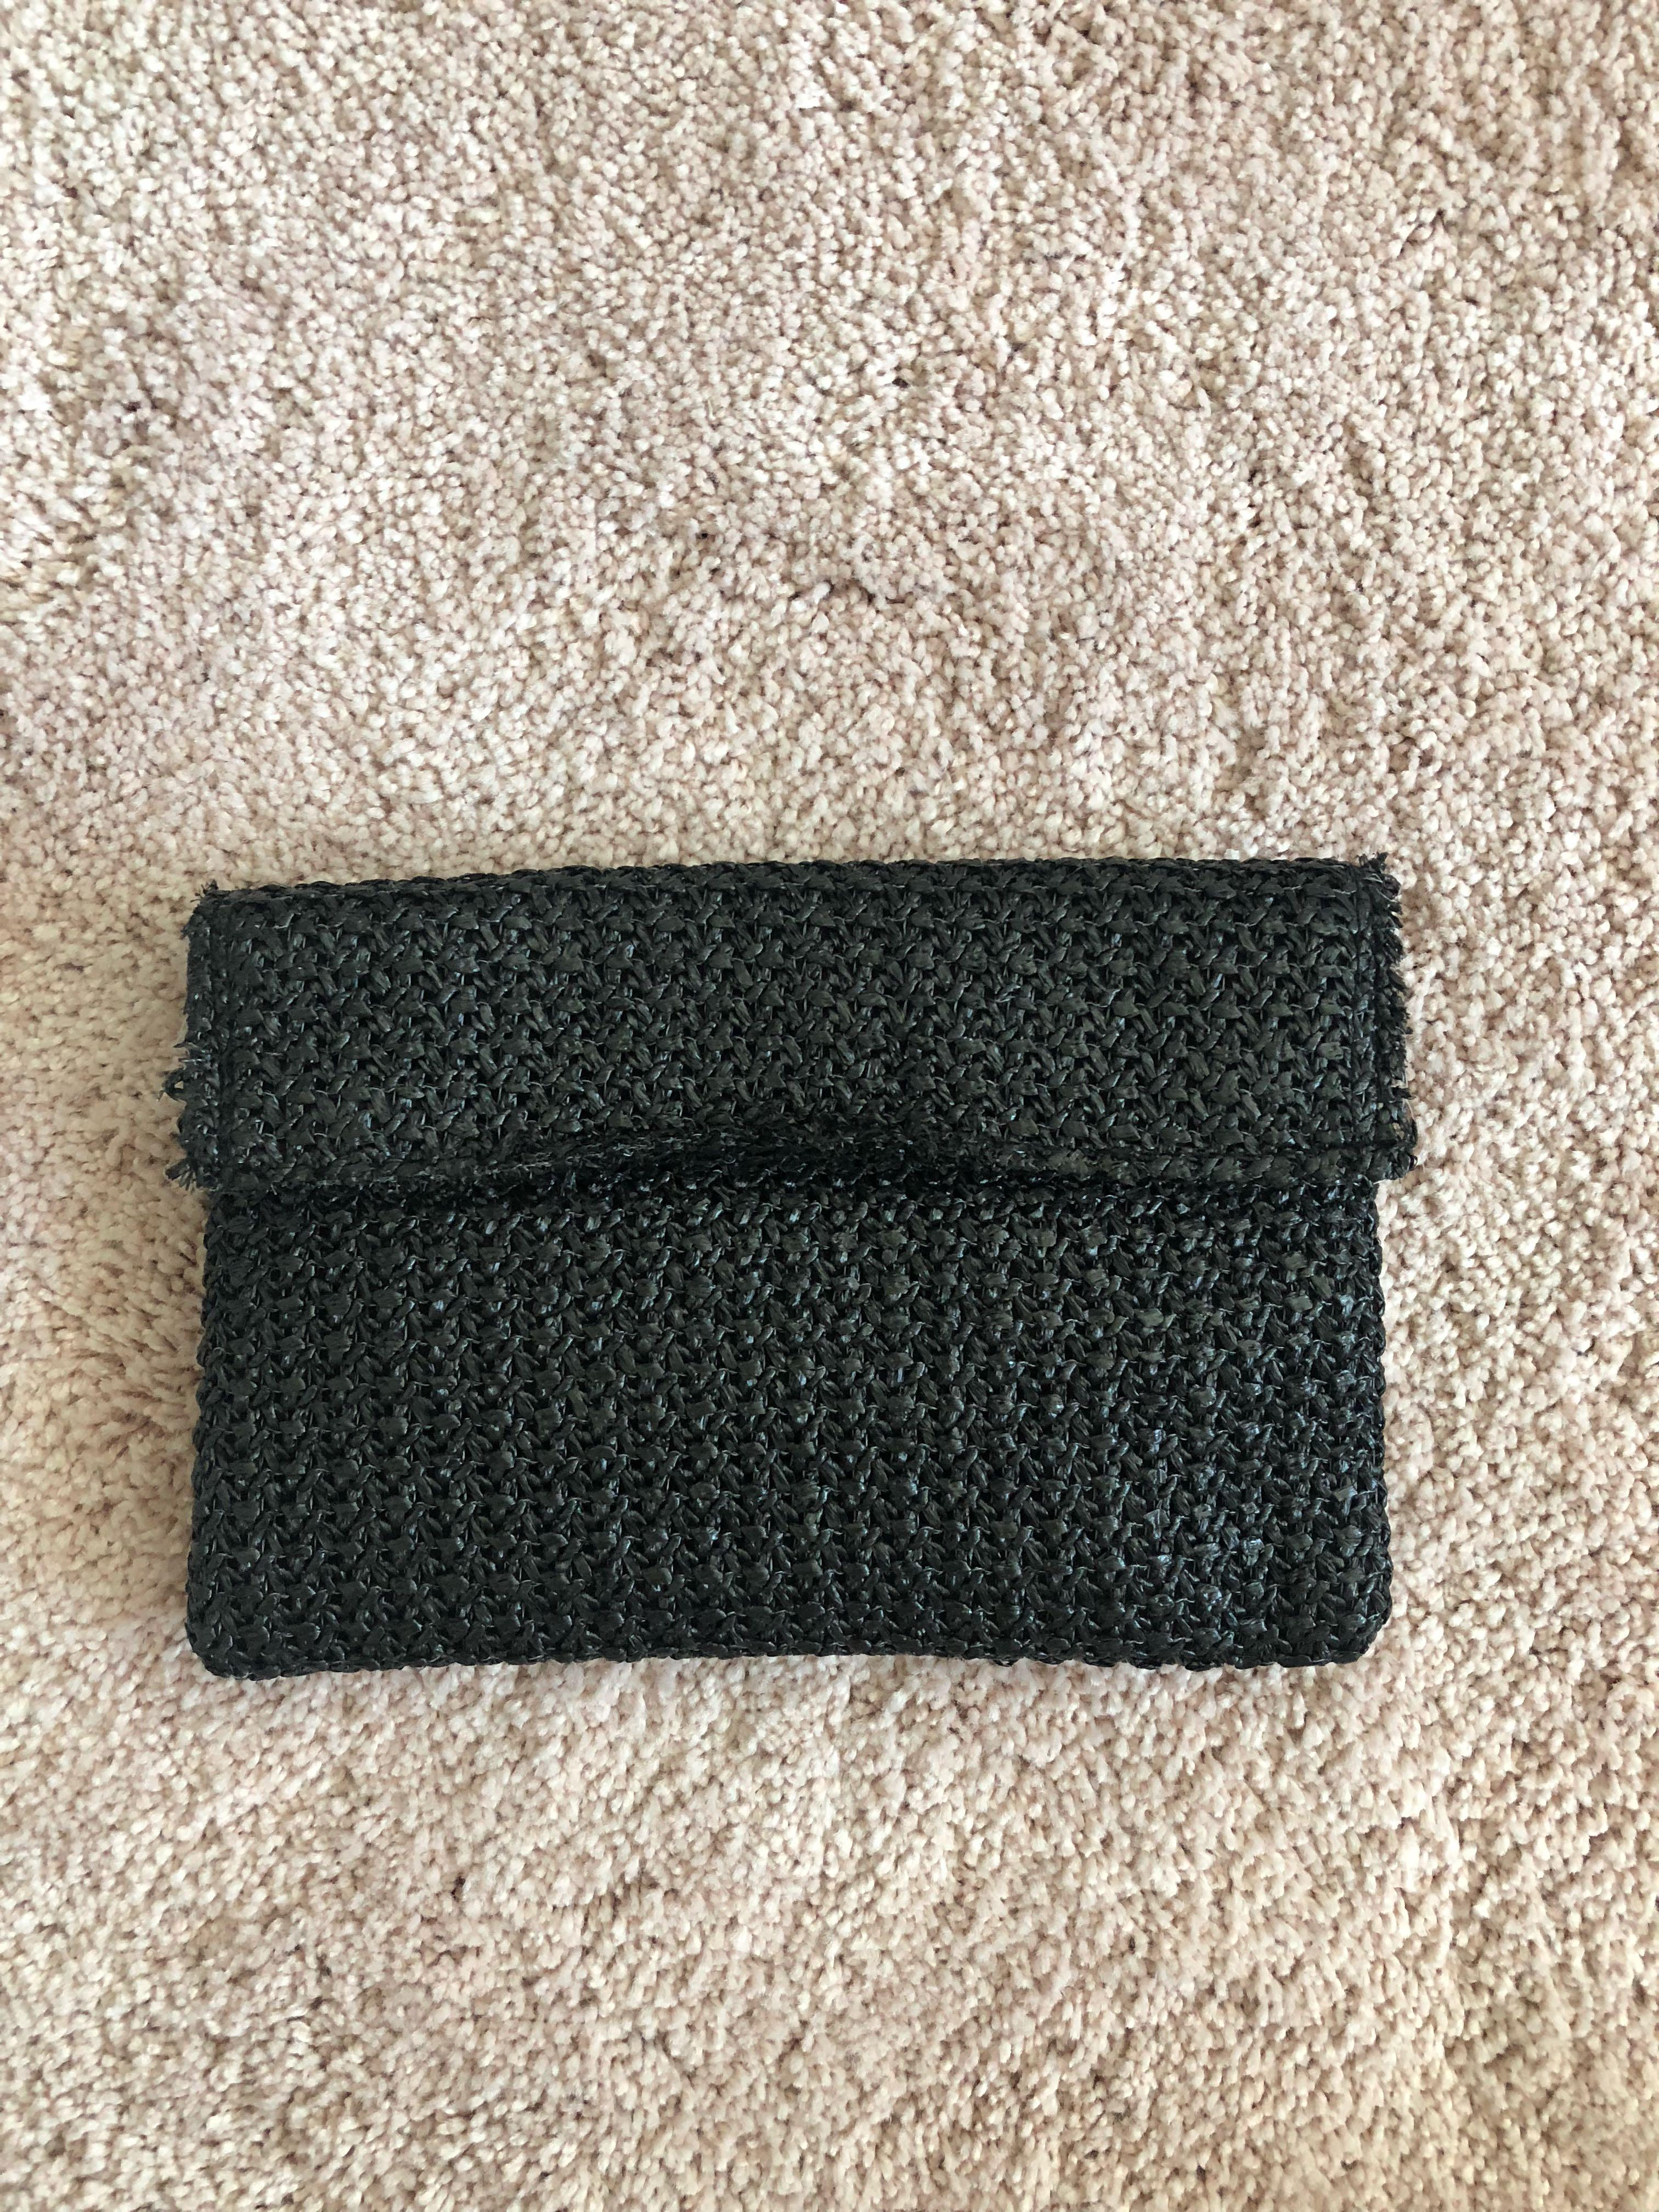 TONY BIANCO BLACK WOVEN CLUTCH